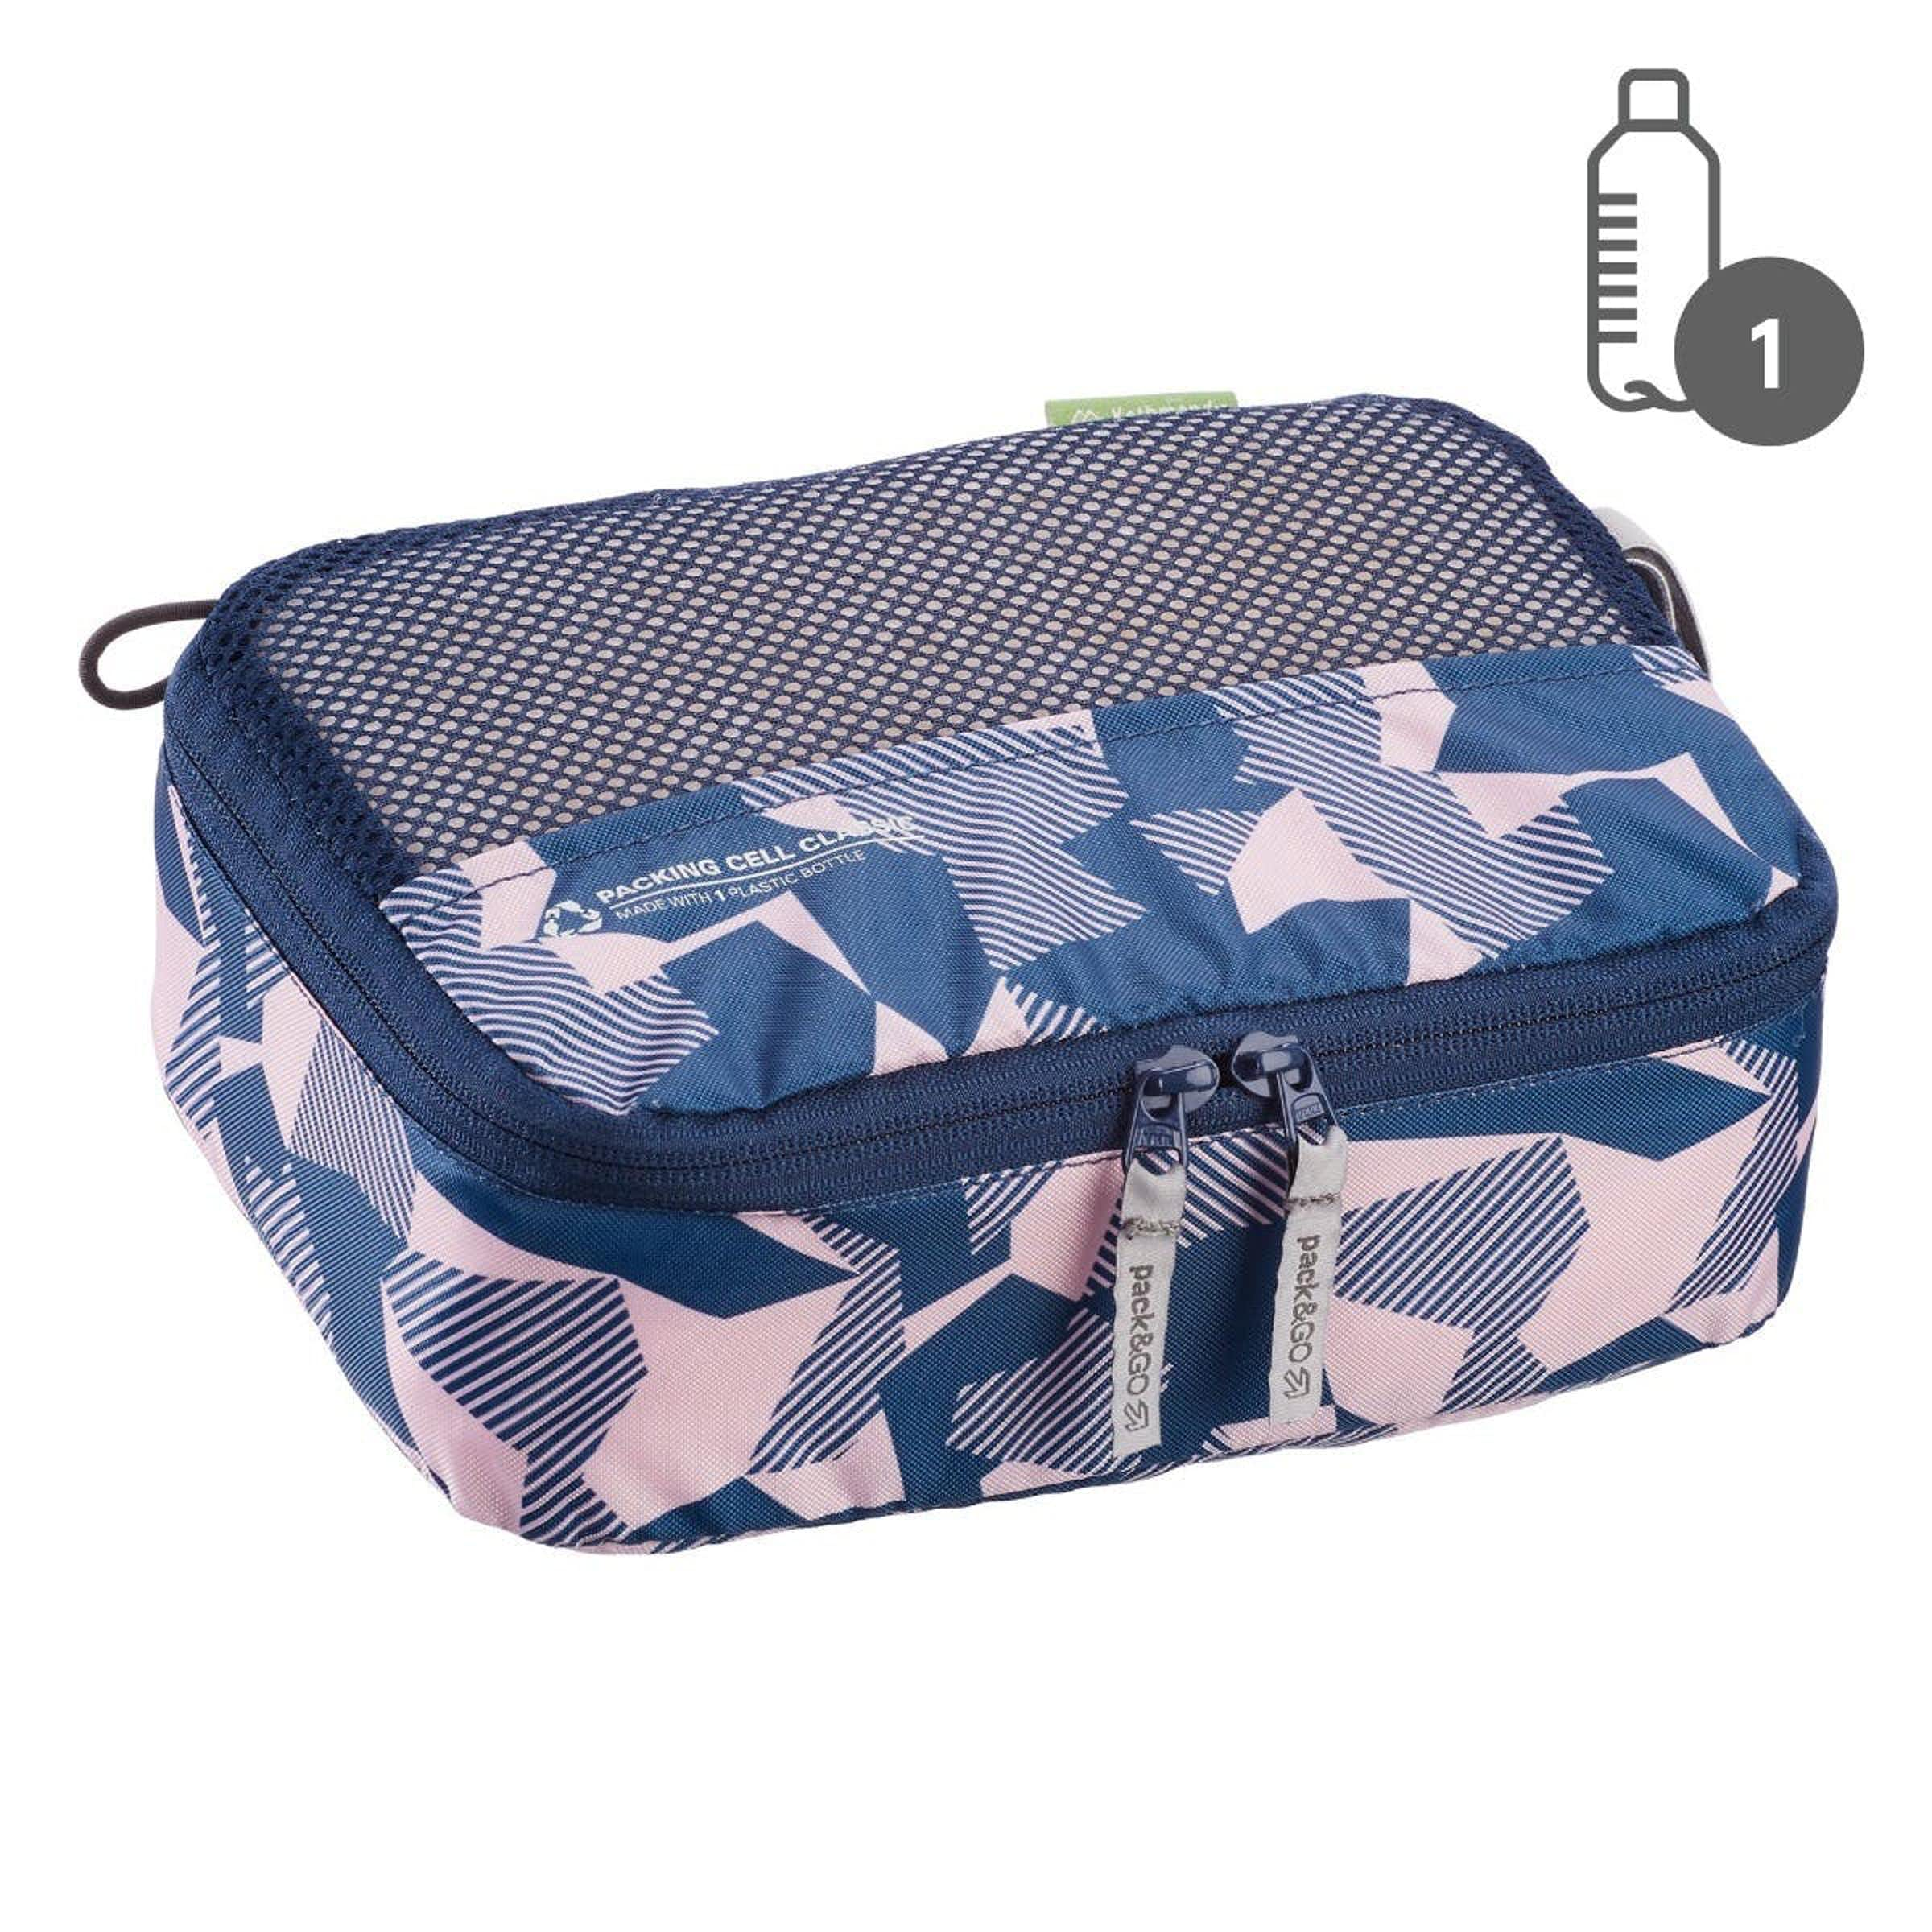 0d54288a6d38 Travel Packing Cubes | Travel Organisers For Luggage & Suitcases